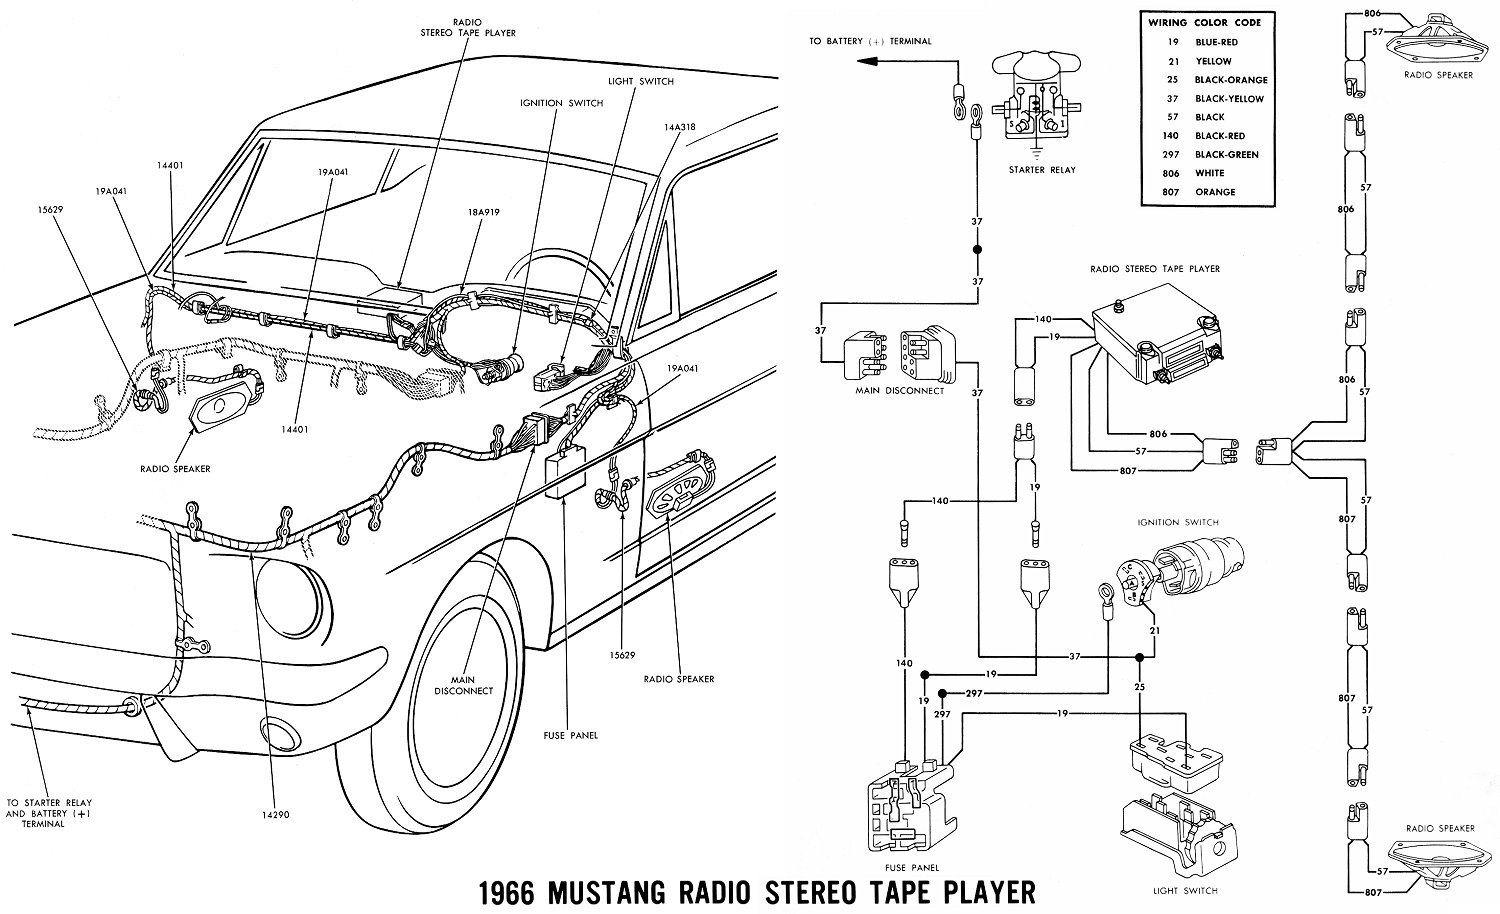 65 Mustang Wiring Harness Diagram Worksheet And 1995 Kawasaki Zx750j 1967 Detailed Schematics Rh Mrskindsclass Com Turn Signal Tilt Colunm Instrument